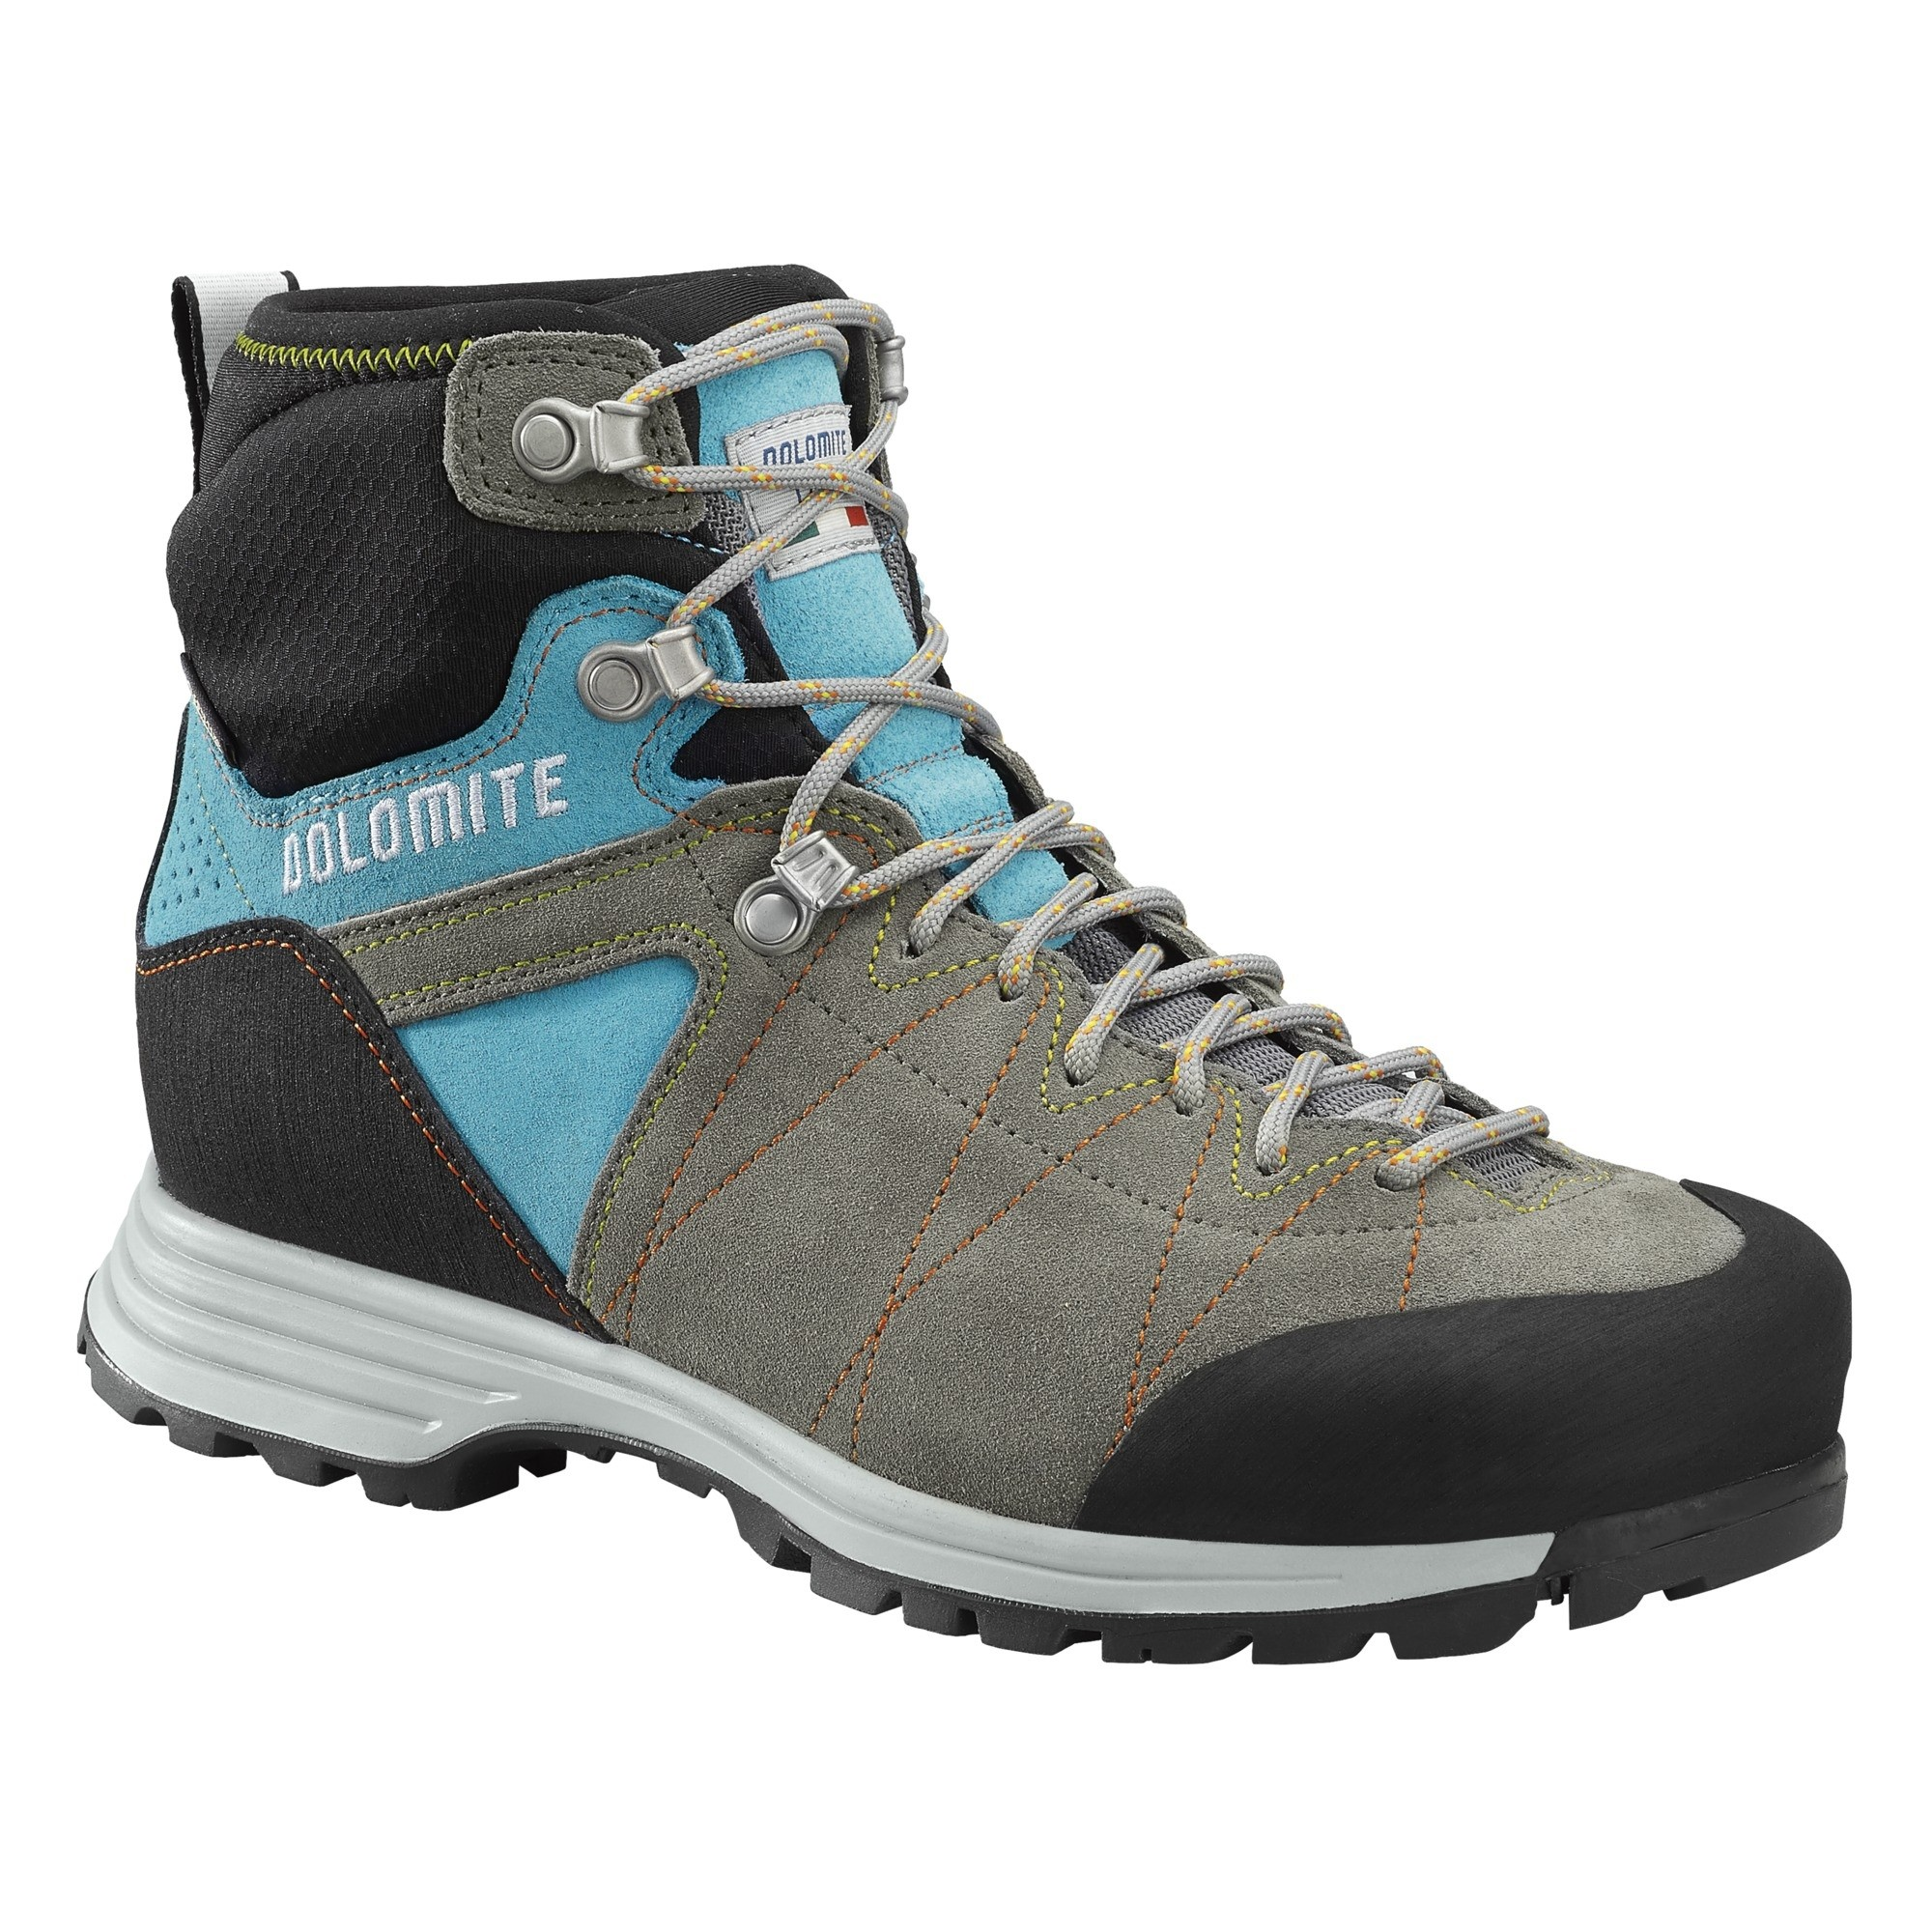 8594100fe337 Dolomite STEINBOCK Hike GTX 1.5 WMN - Pewter Grey Atoll Blue ...